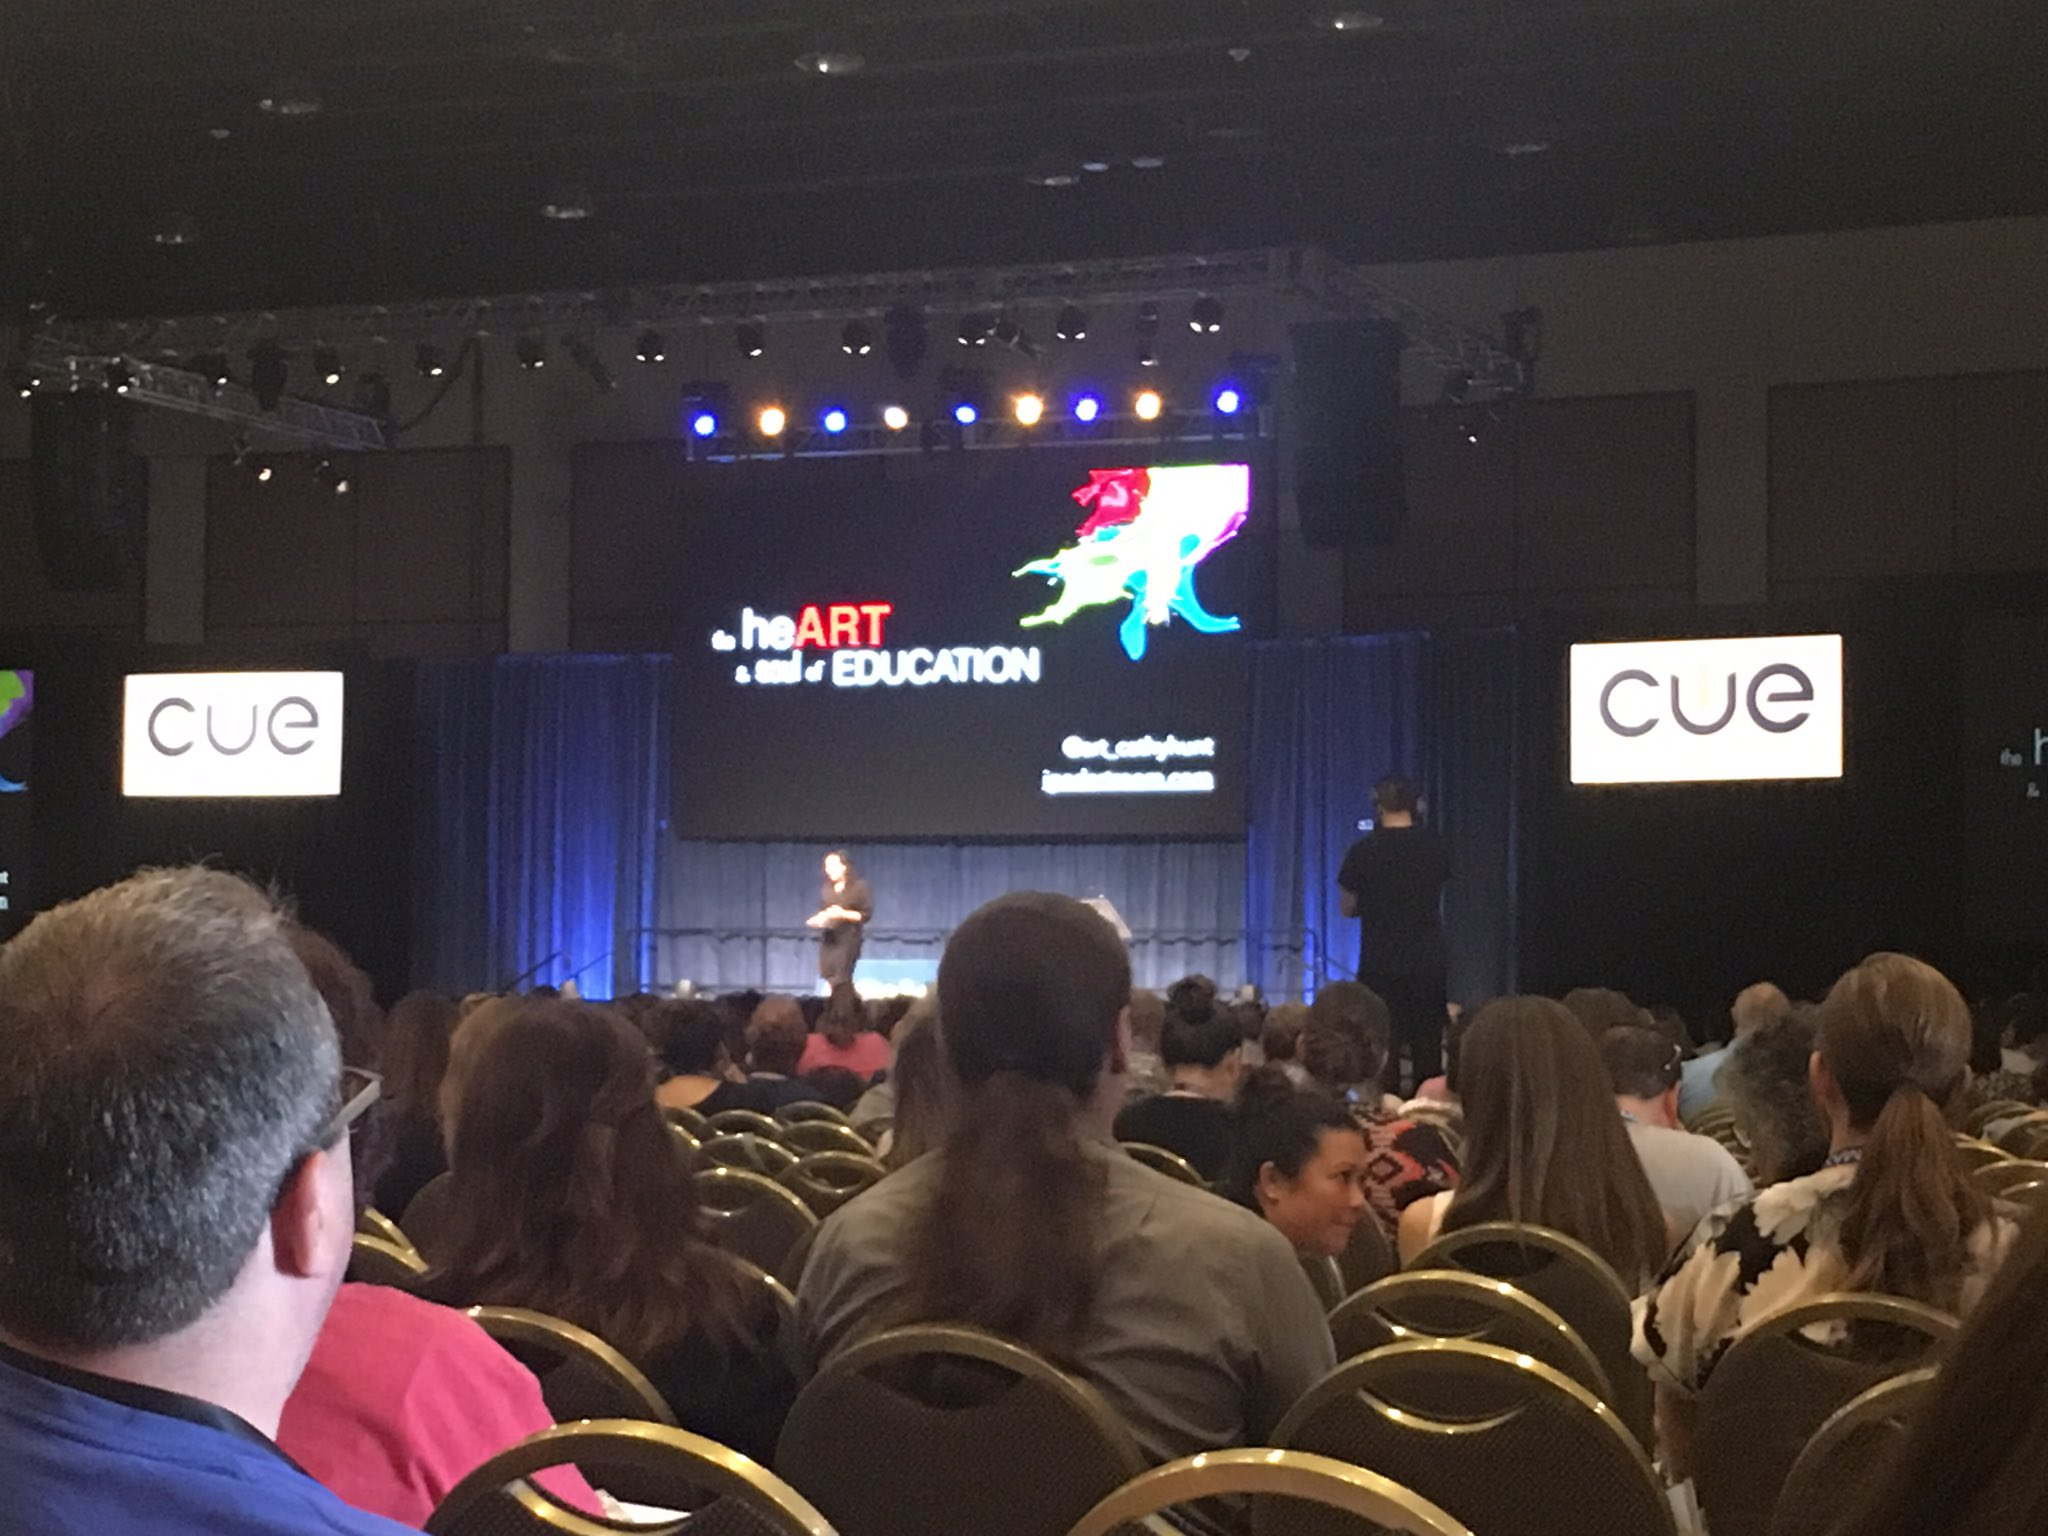 Kicking off closing keynote with @art_cathyhunt ! @Cre8ingArtNC14 wish you were here!!! #CUE17 https://t.co/xIQLh0UVSQ